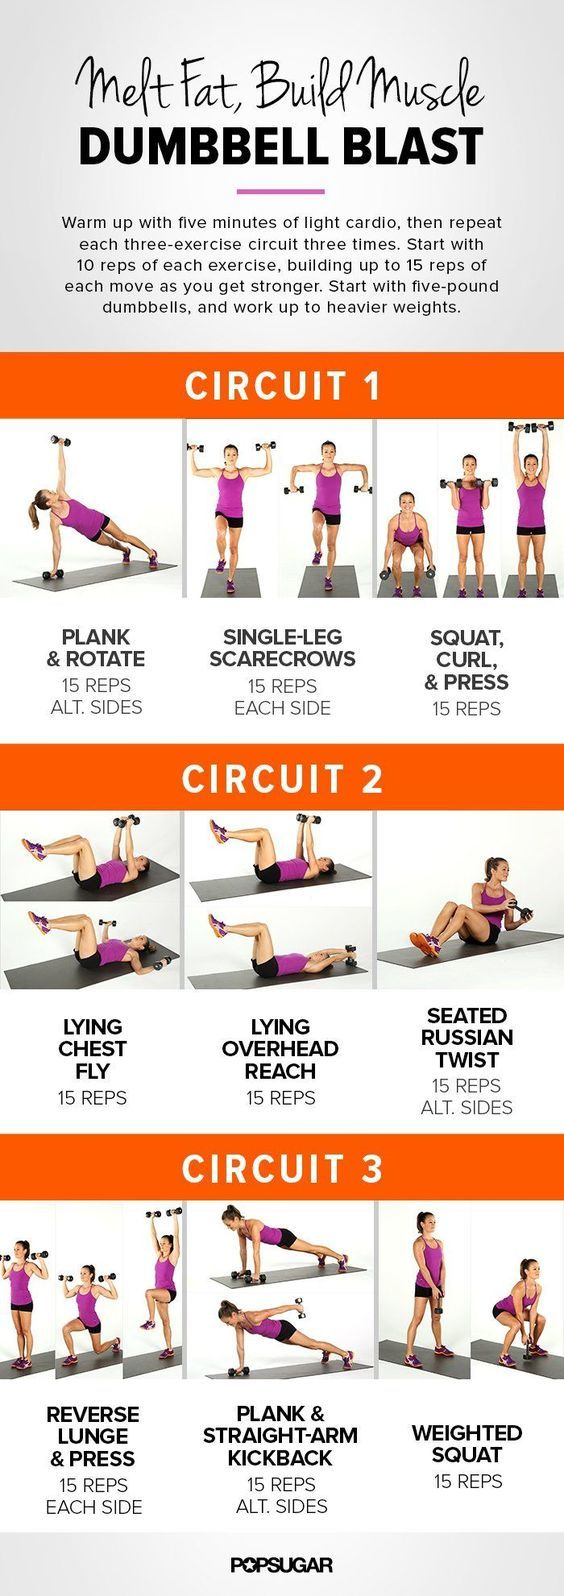 51 FAT BURING WORKOUTS THAT FIT INTRO ANY BUSY SCHEDULE – The